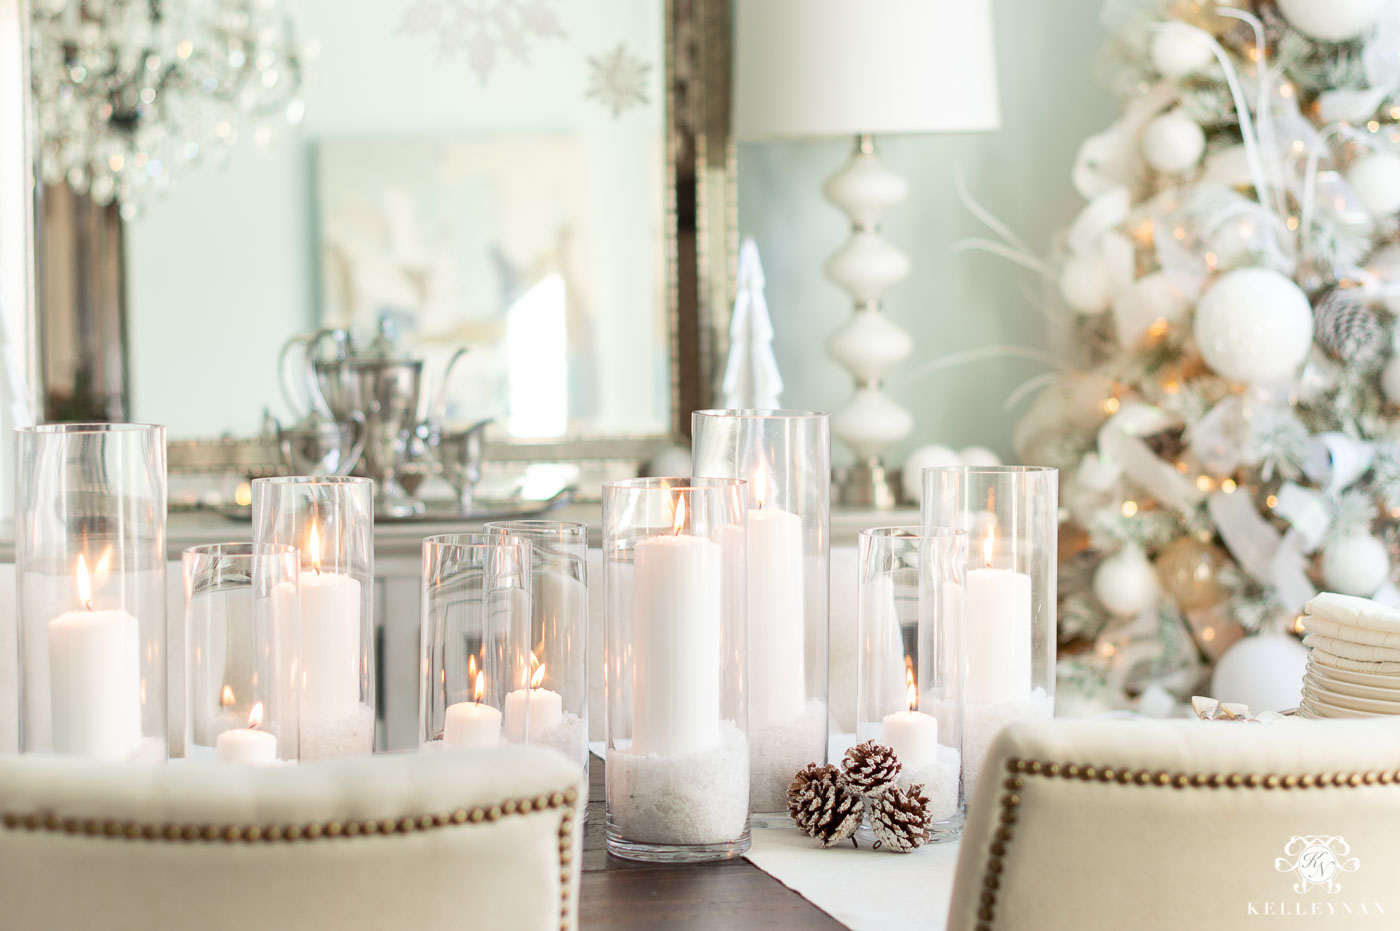 Simple Candle Centerpiece for Christmas Dining Room Centerpiece Decor